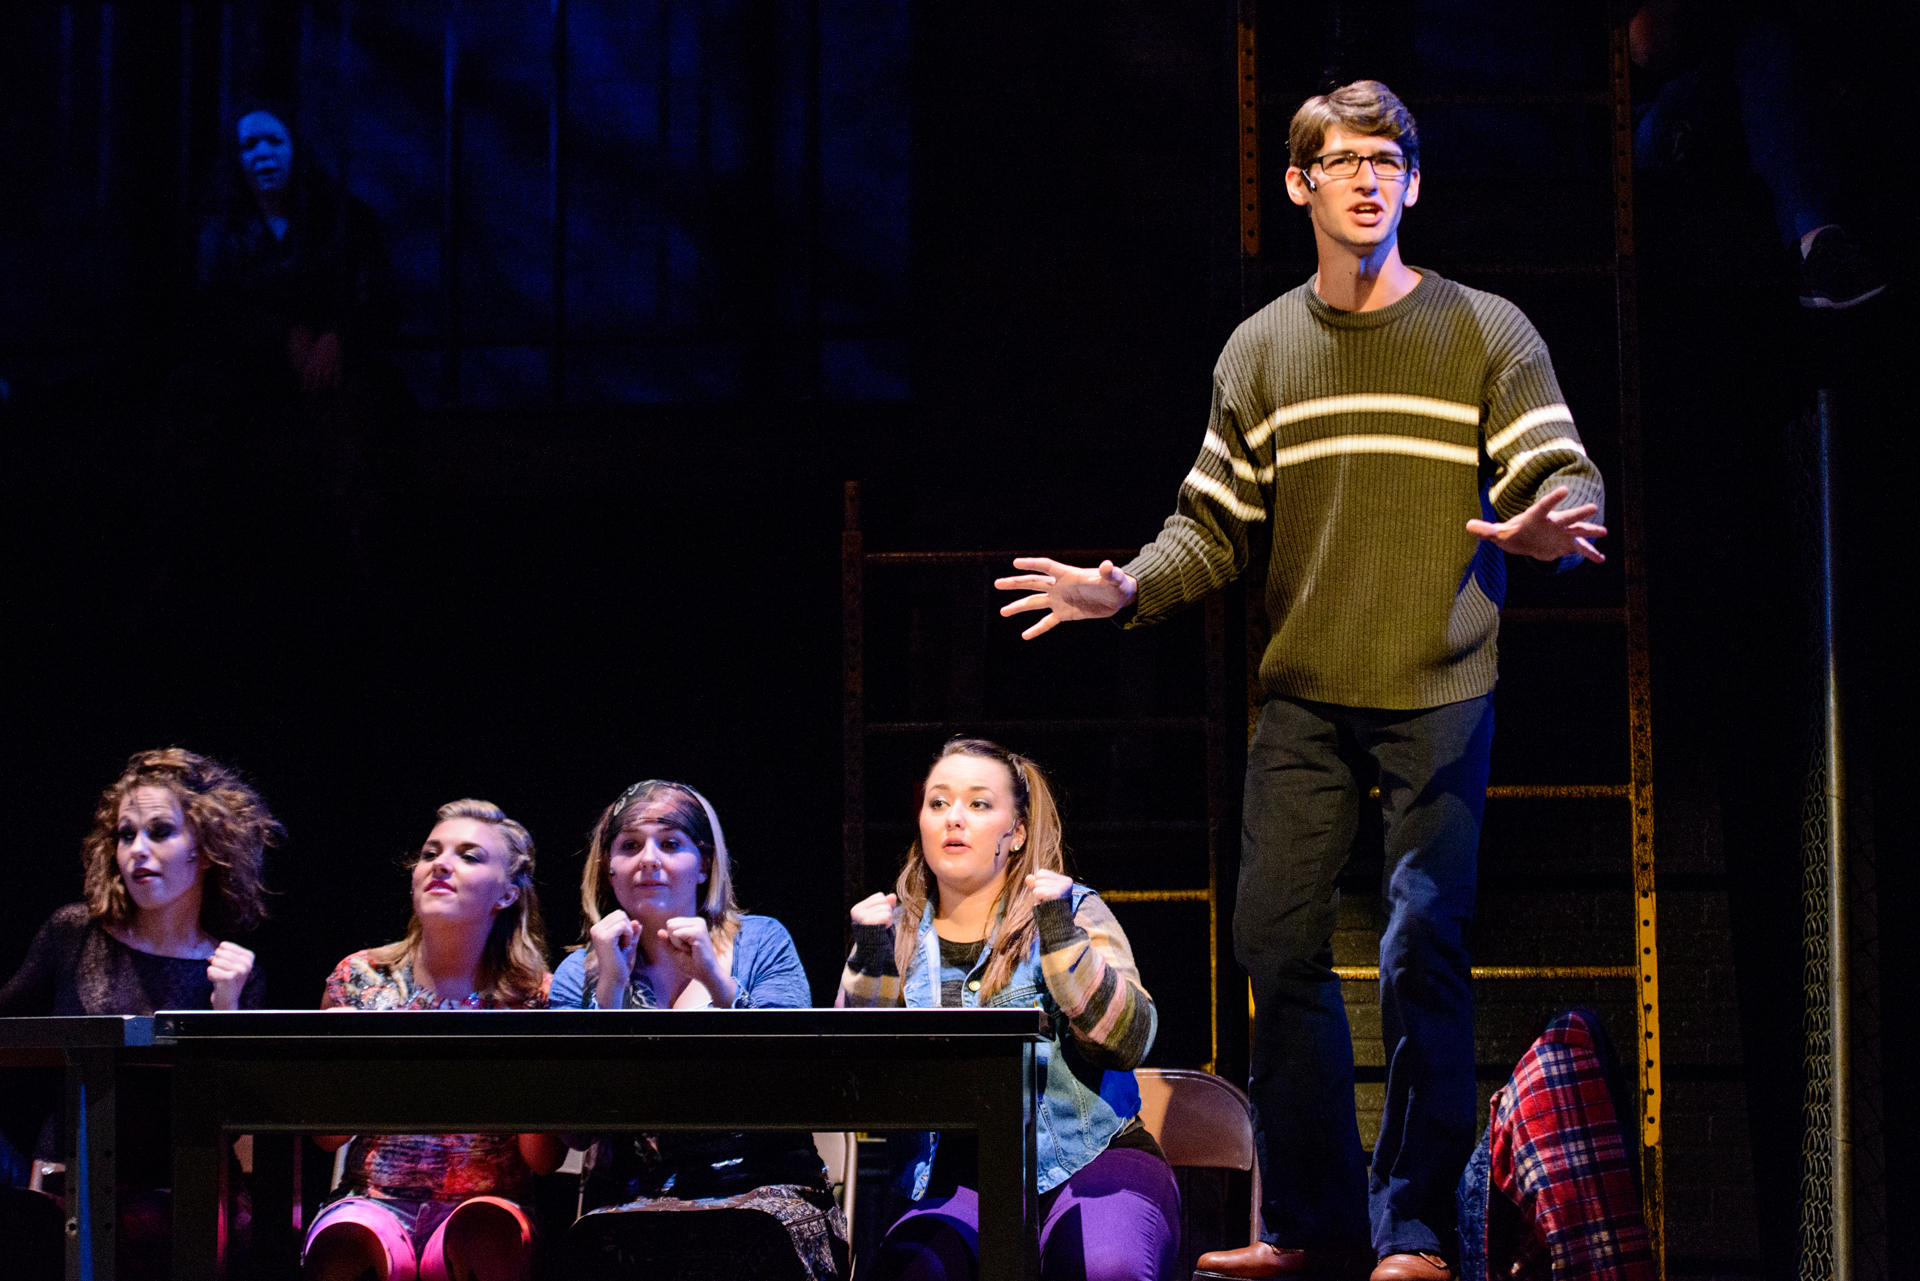 Current Student Patrick Wallace performing in the Siena Heights rendition of Rent in the fall of 2013.